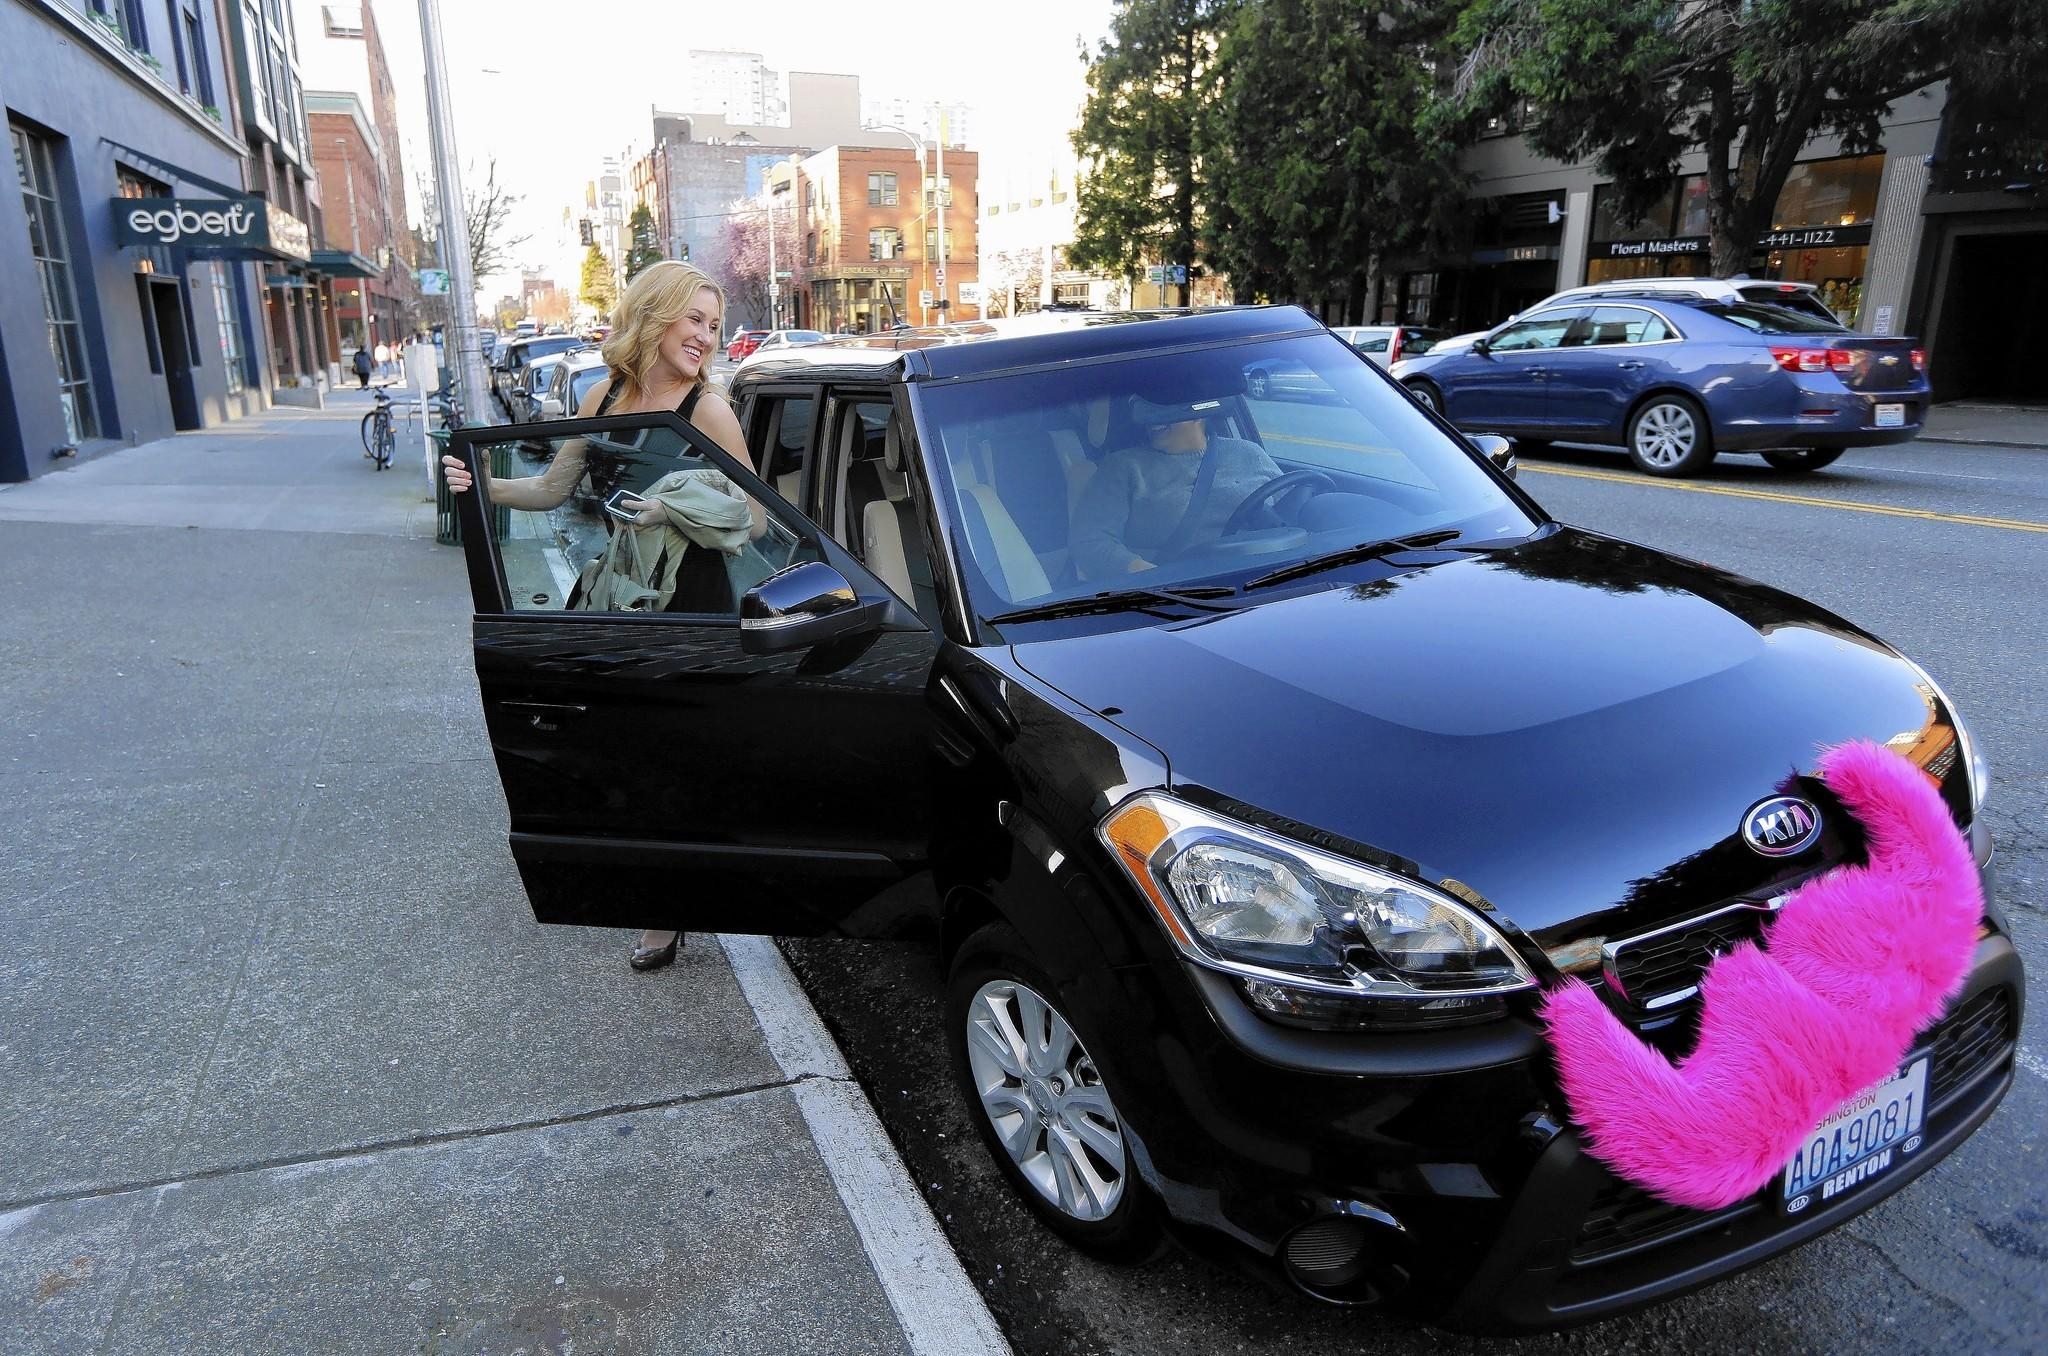 Investors poured $9.5 billion into 951 U.S. start-ups during the first three months of 2014, according to the latest MoneyTree report released Friday. Above, a customer uses the ride-sharing service Lyft, which received a new round of funding worth $60 million last year.